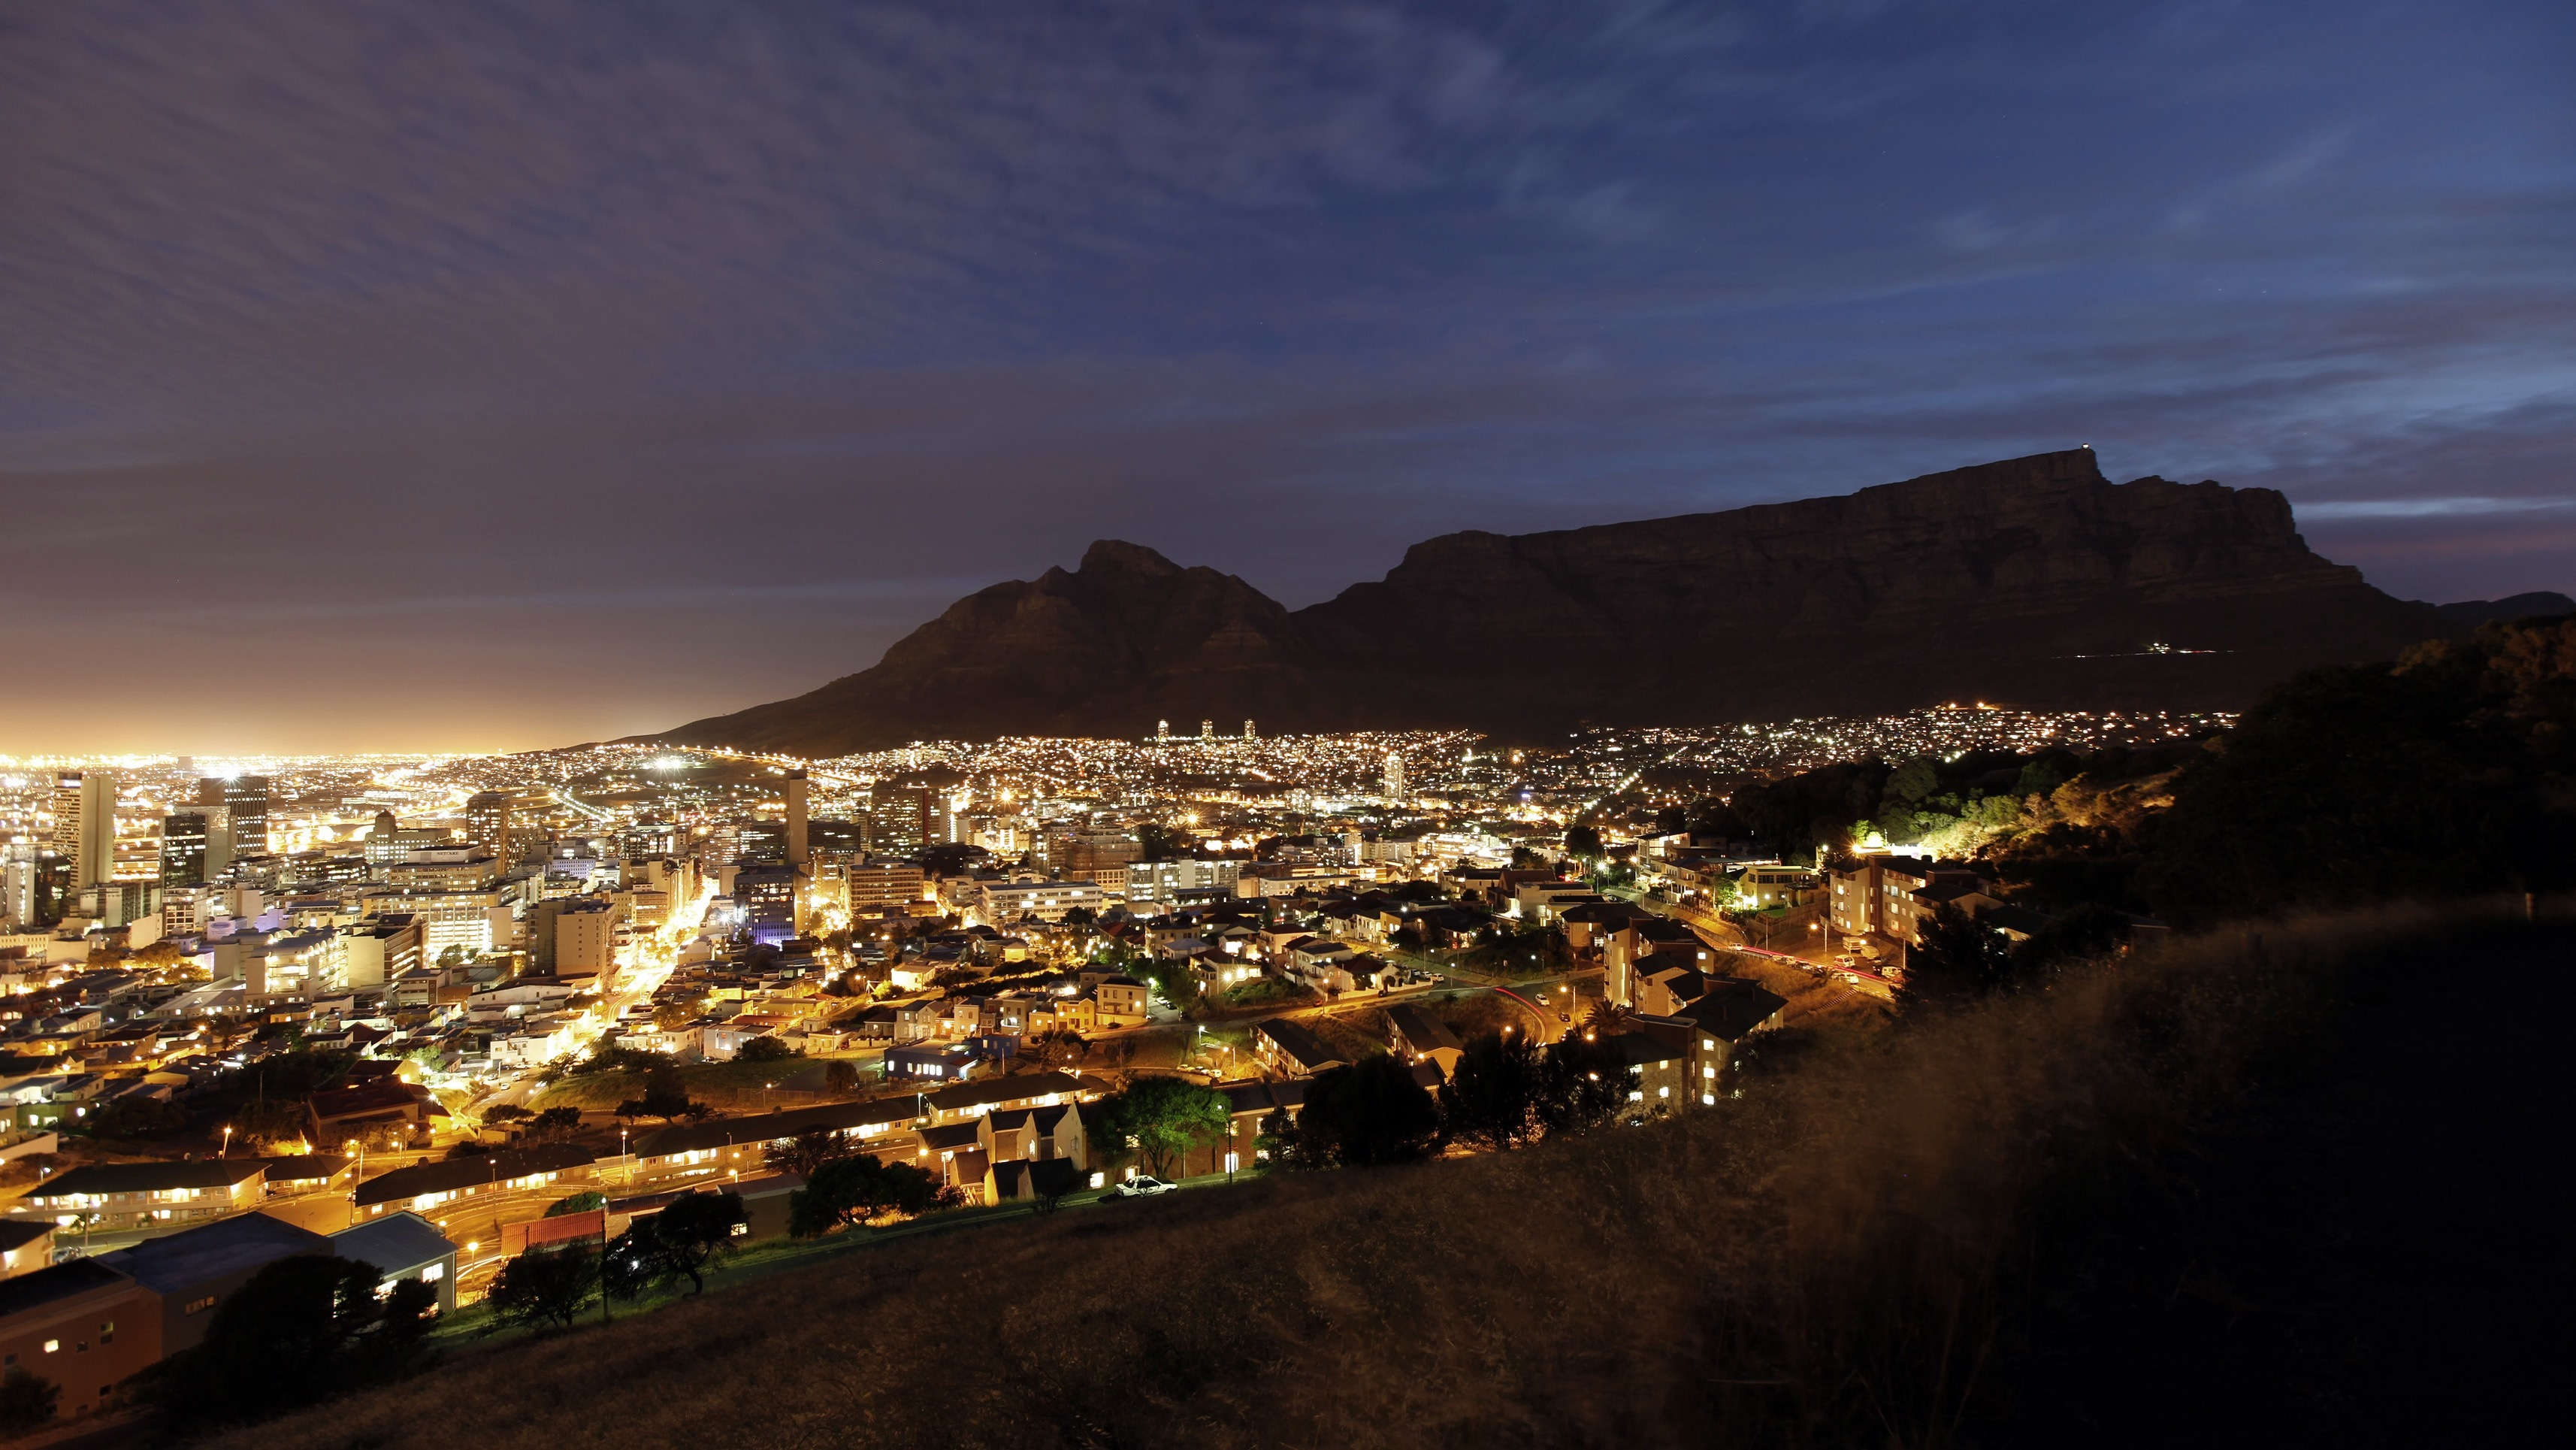 Cape Town lights up as dusk falls over the city's backdrop Table Mountain, November 2, 2009. Cape Town is one of nine South African cities hosting the 2010 Fifa Soccer World Cup. REUTERS/Mike Hutchings